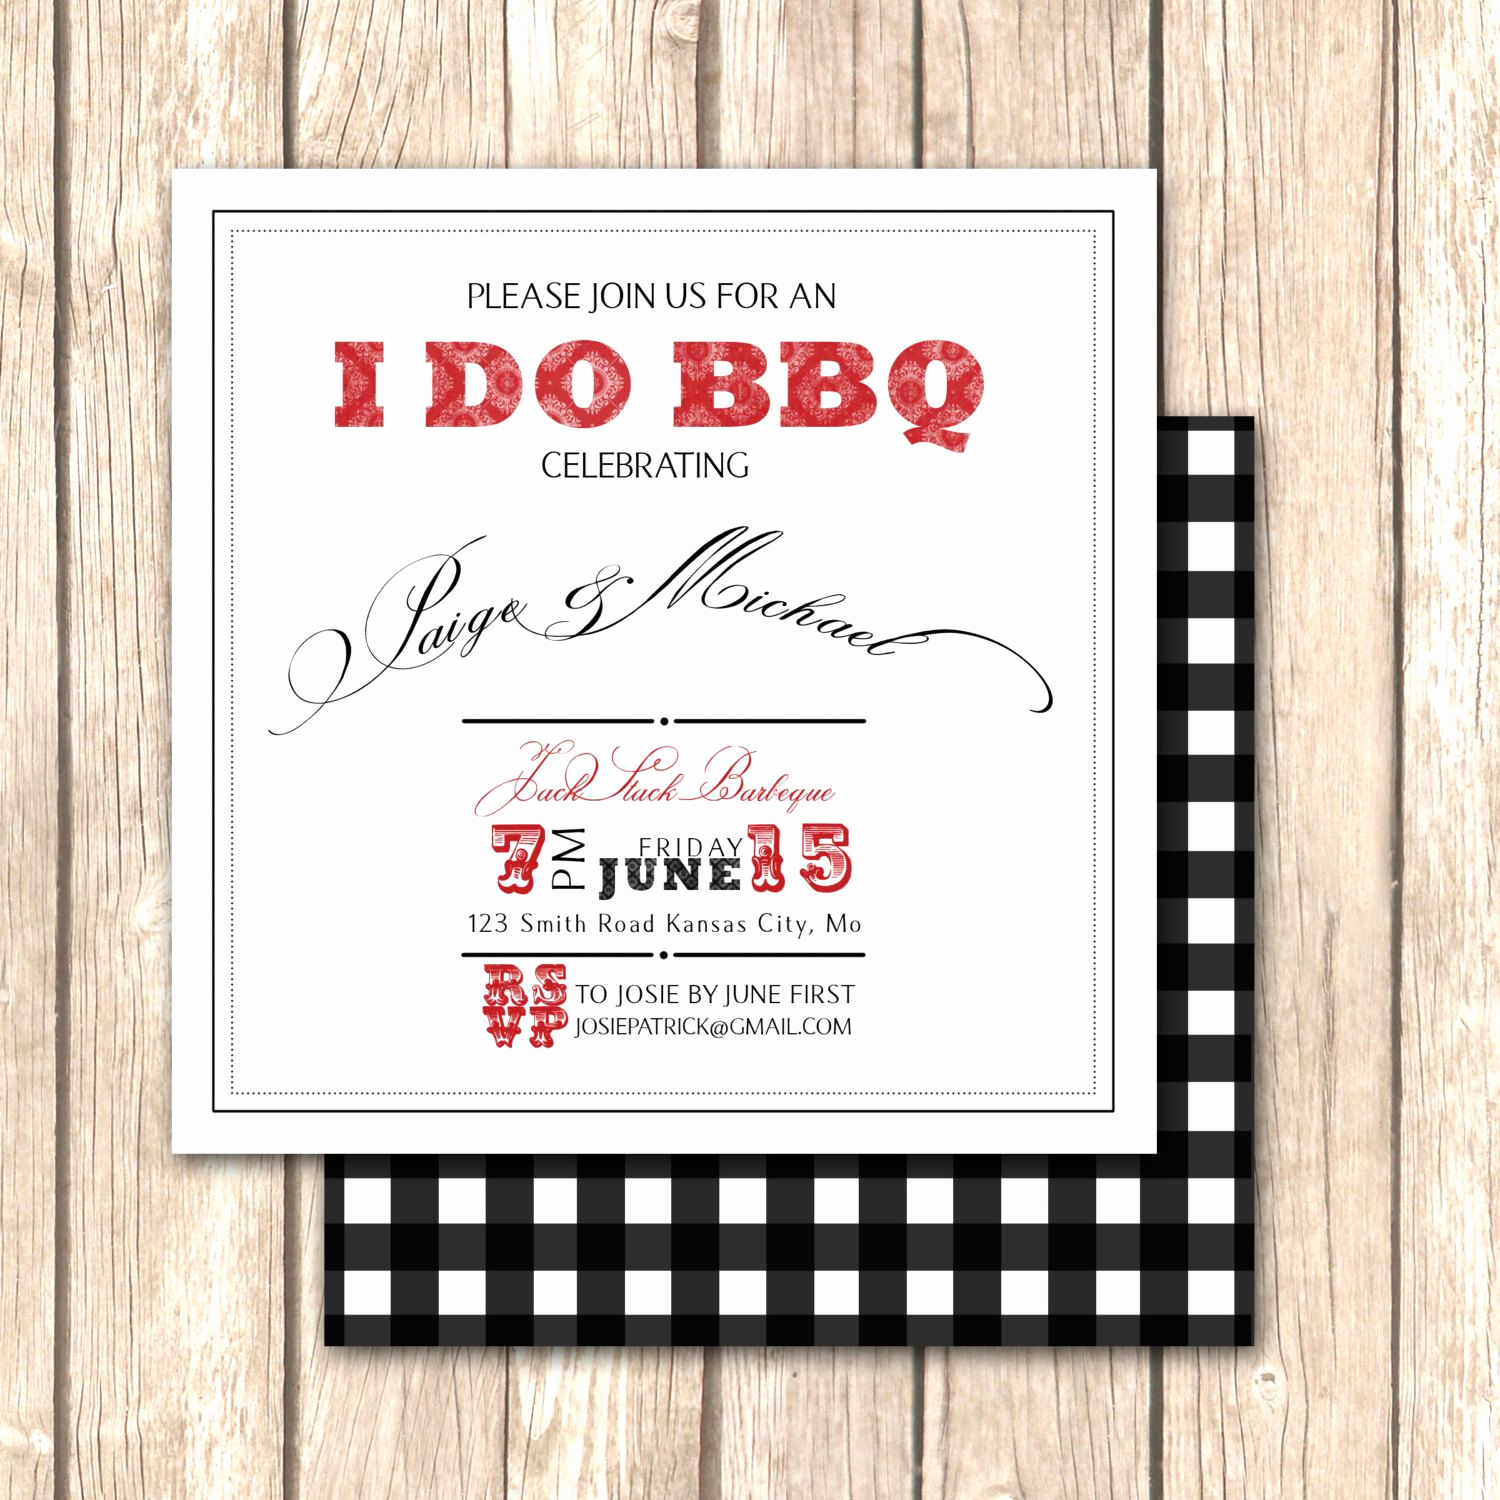 Birthday Dinner Invitation Wording Luxury Elegant Bbq Rehearsal Dinner Invitation Upscale Bbq